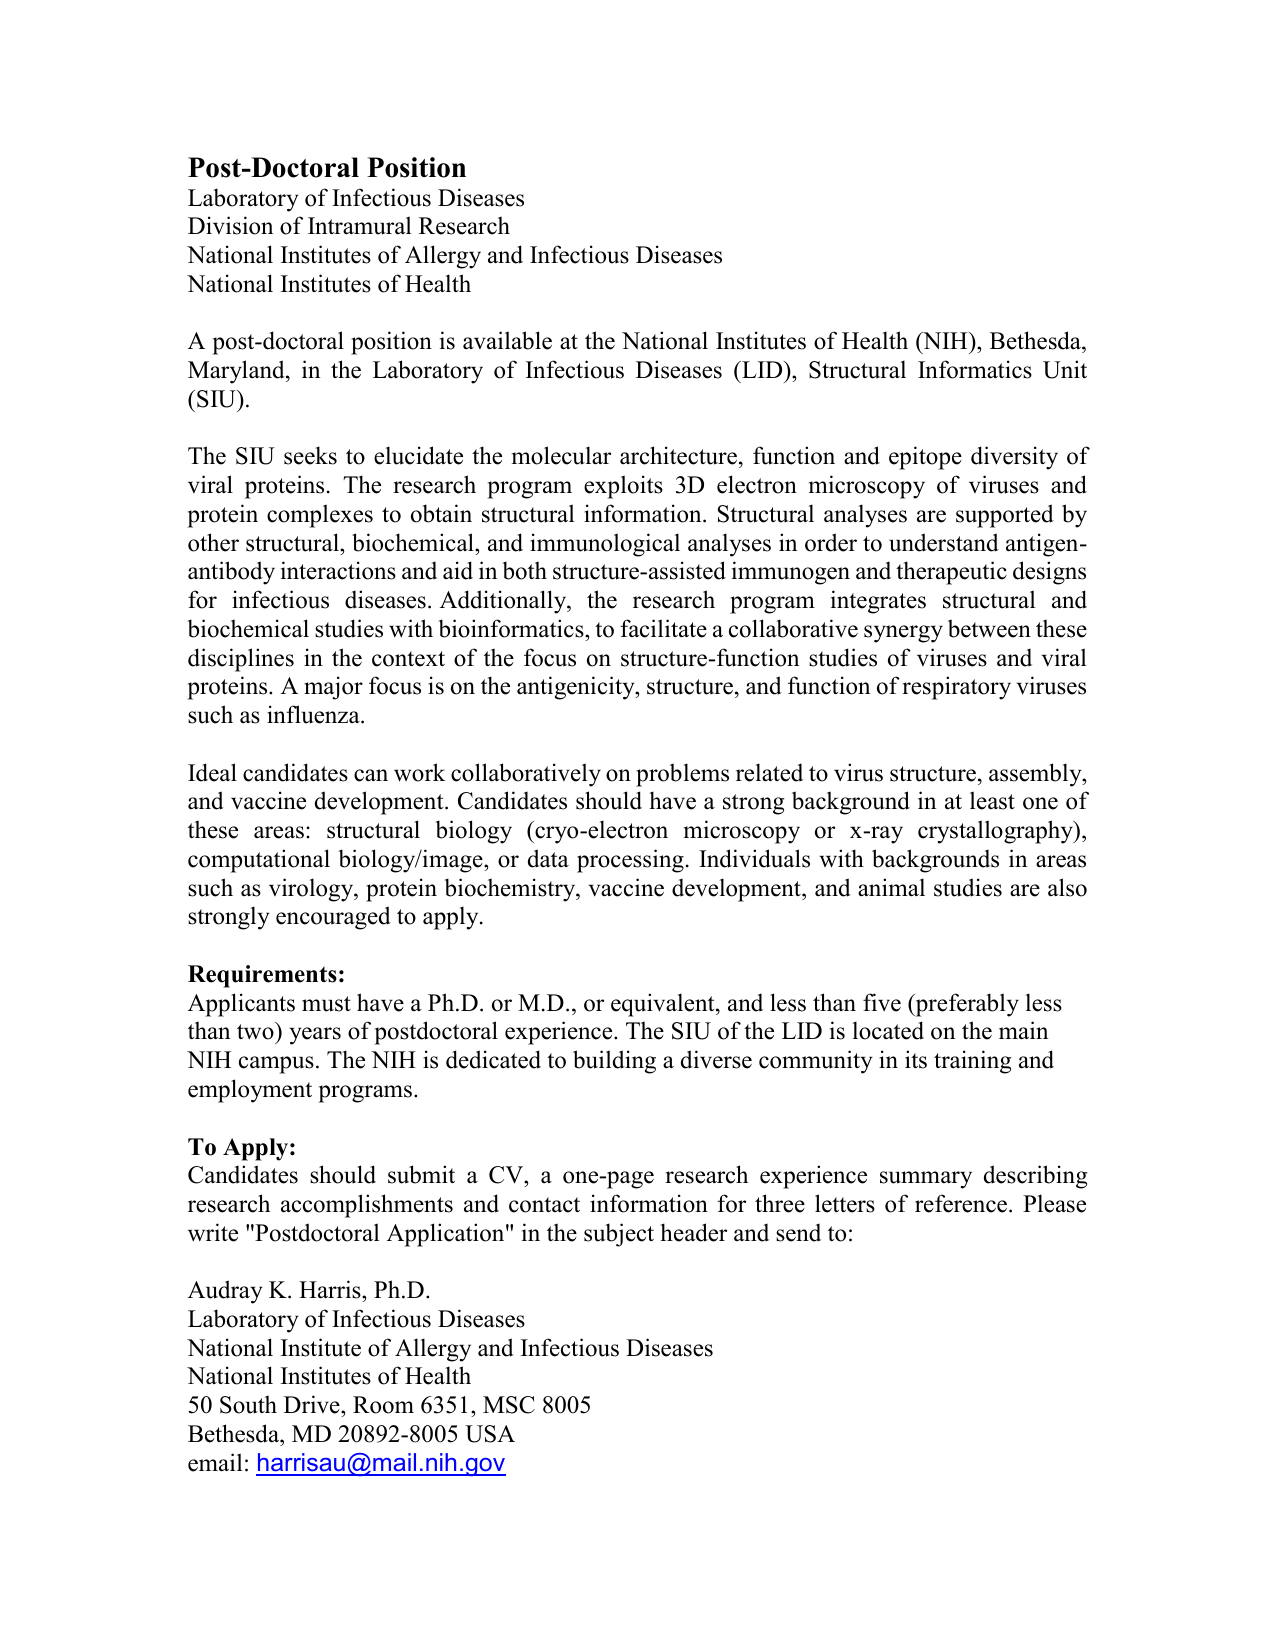 Postdoc Cover Letter Sample Doc from s1.studyres.com